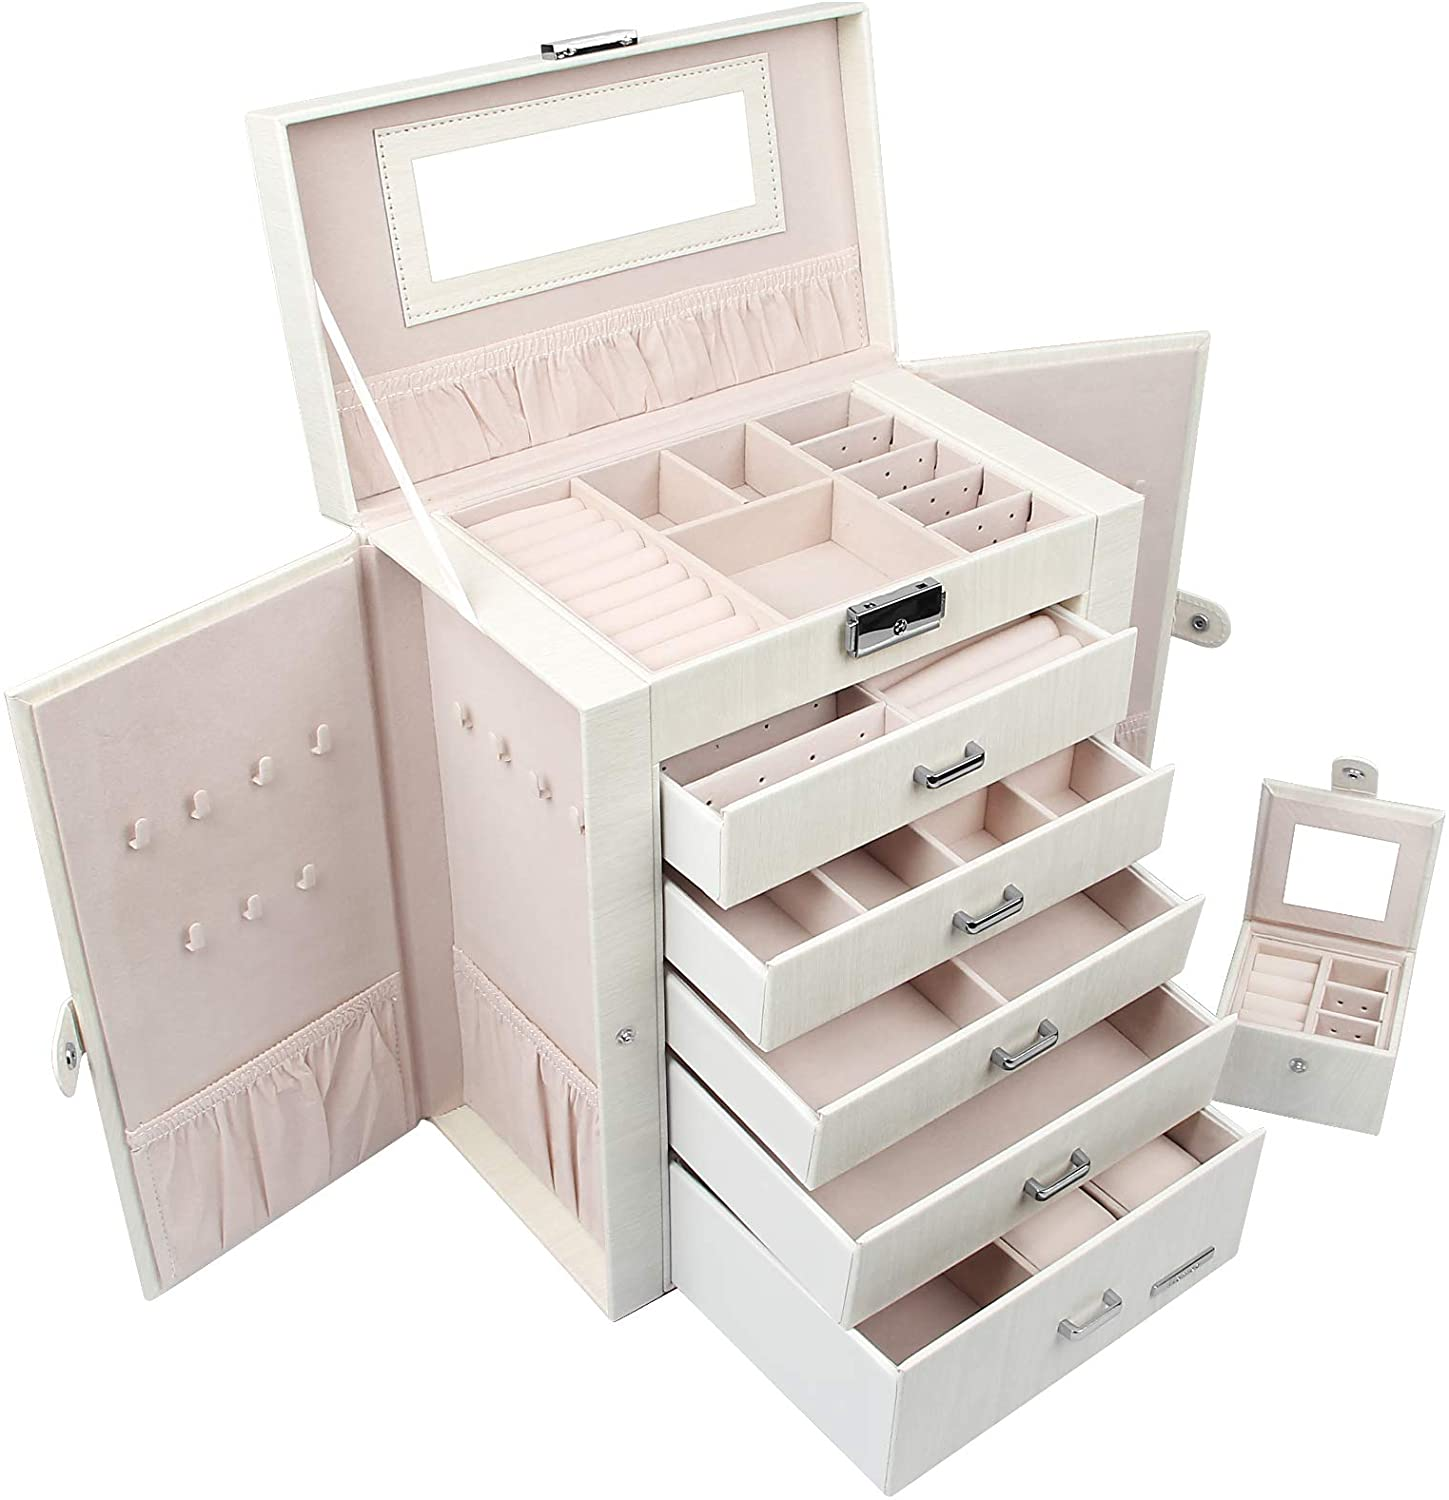 Homde 2 in 1 Huge Jewelry Box//Organizer//Case Faux Leather with Small Travel Case Gift for Girls or Women White Wood Grain